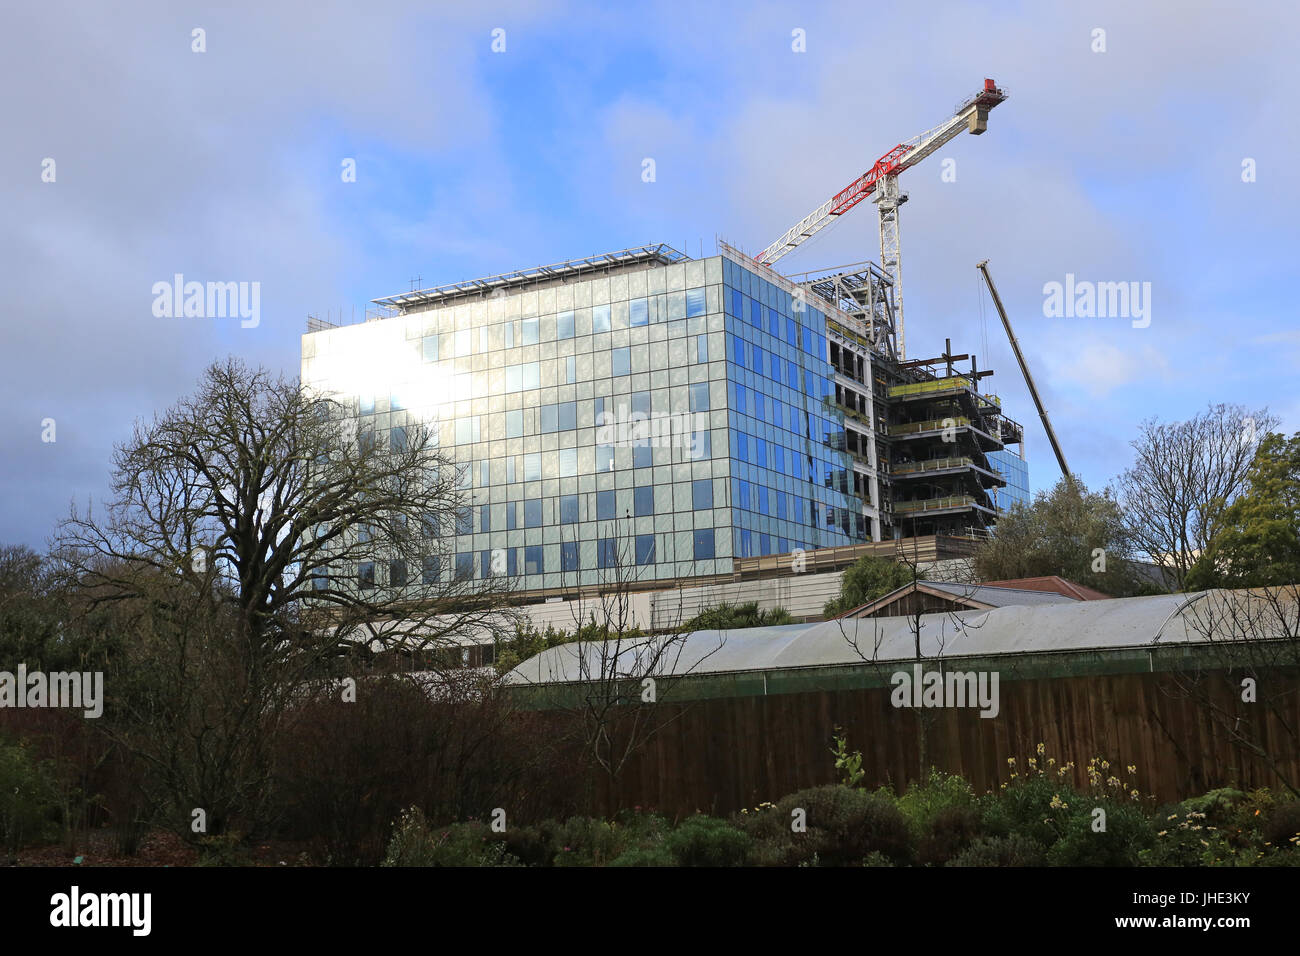 Acute Services Building under construction - Stock Image